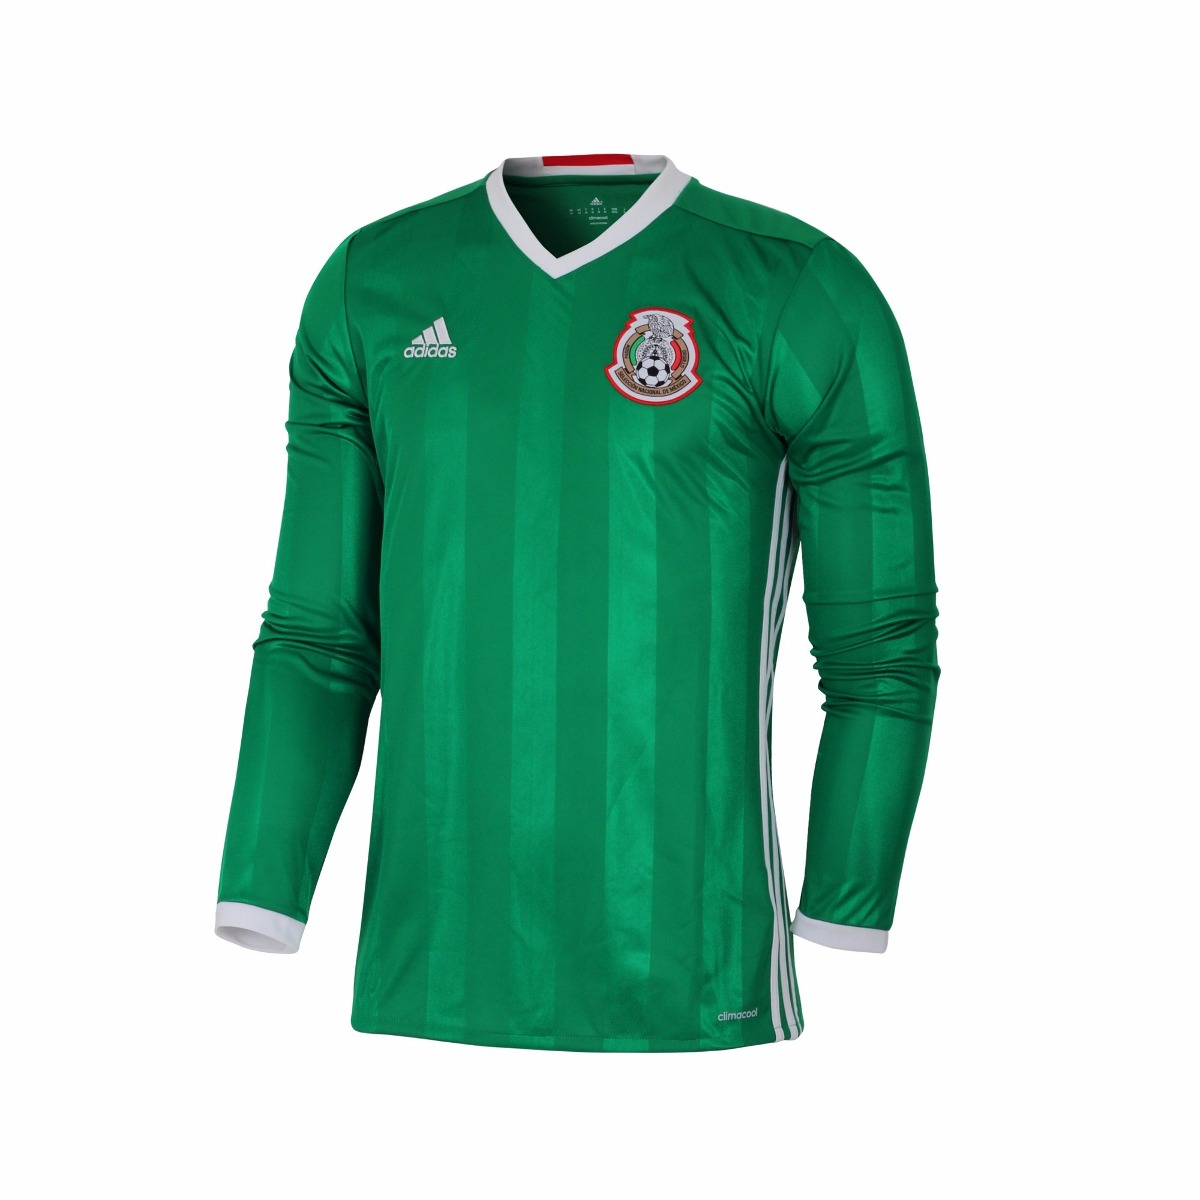 473214ed81212 Jersey Mexico 2016-2017 Manga Larga Seleccion Mexicana -   500.00 en ...